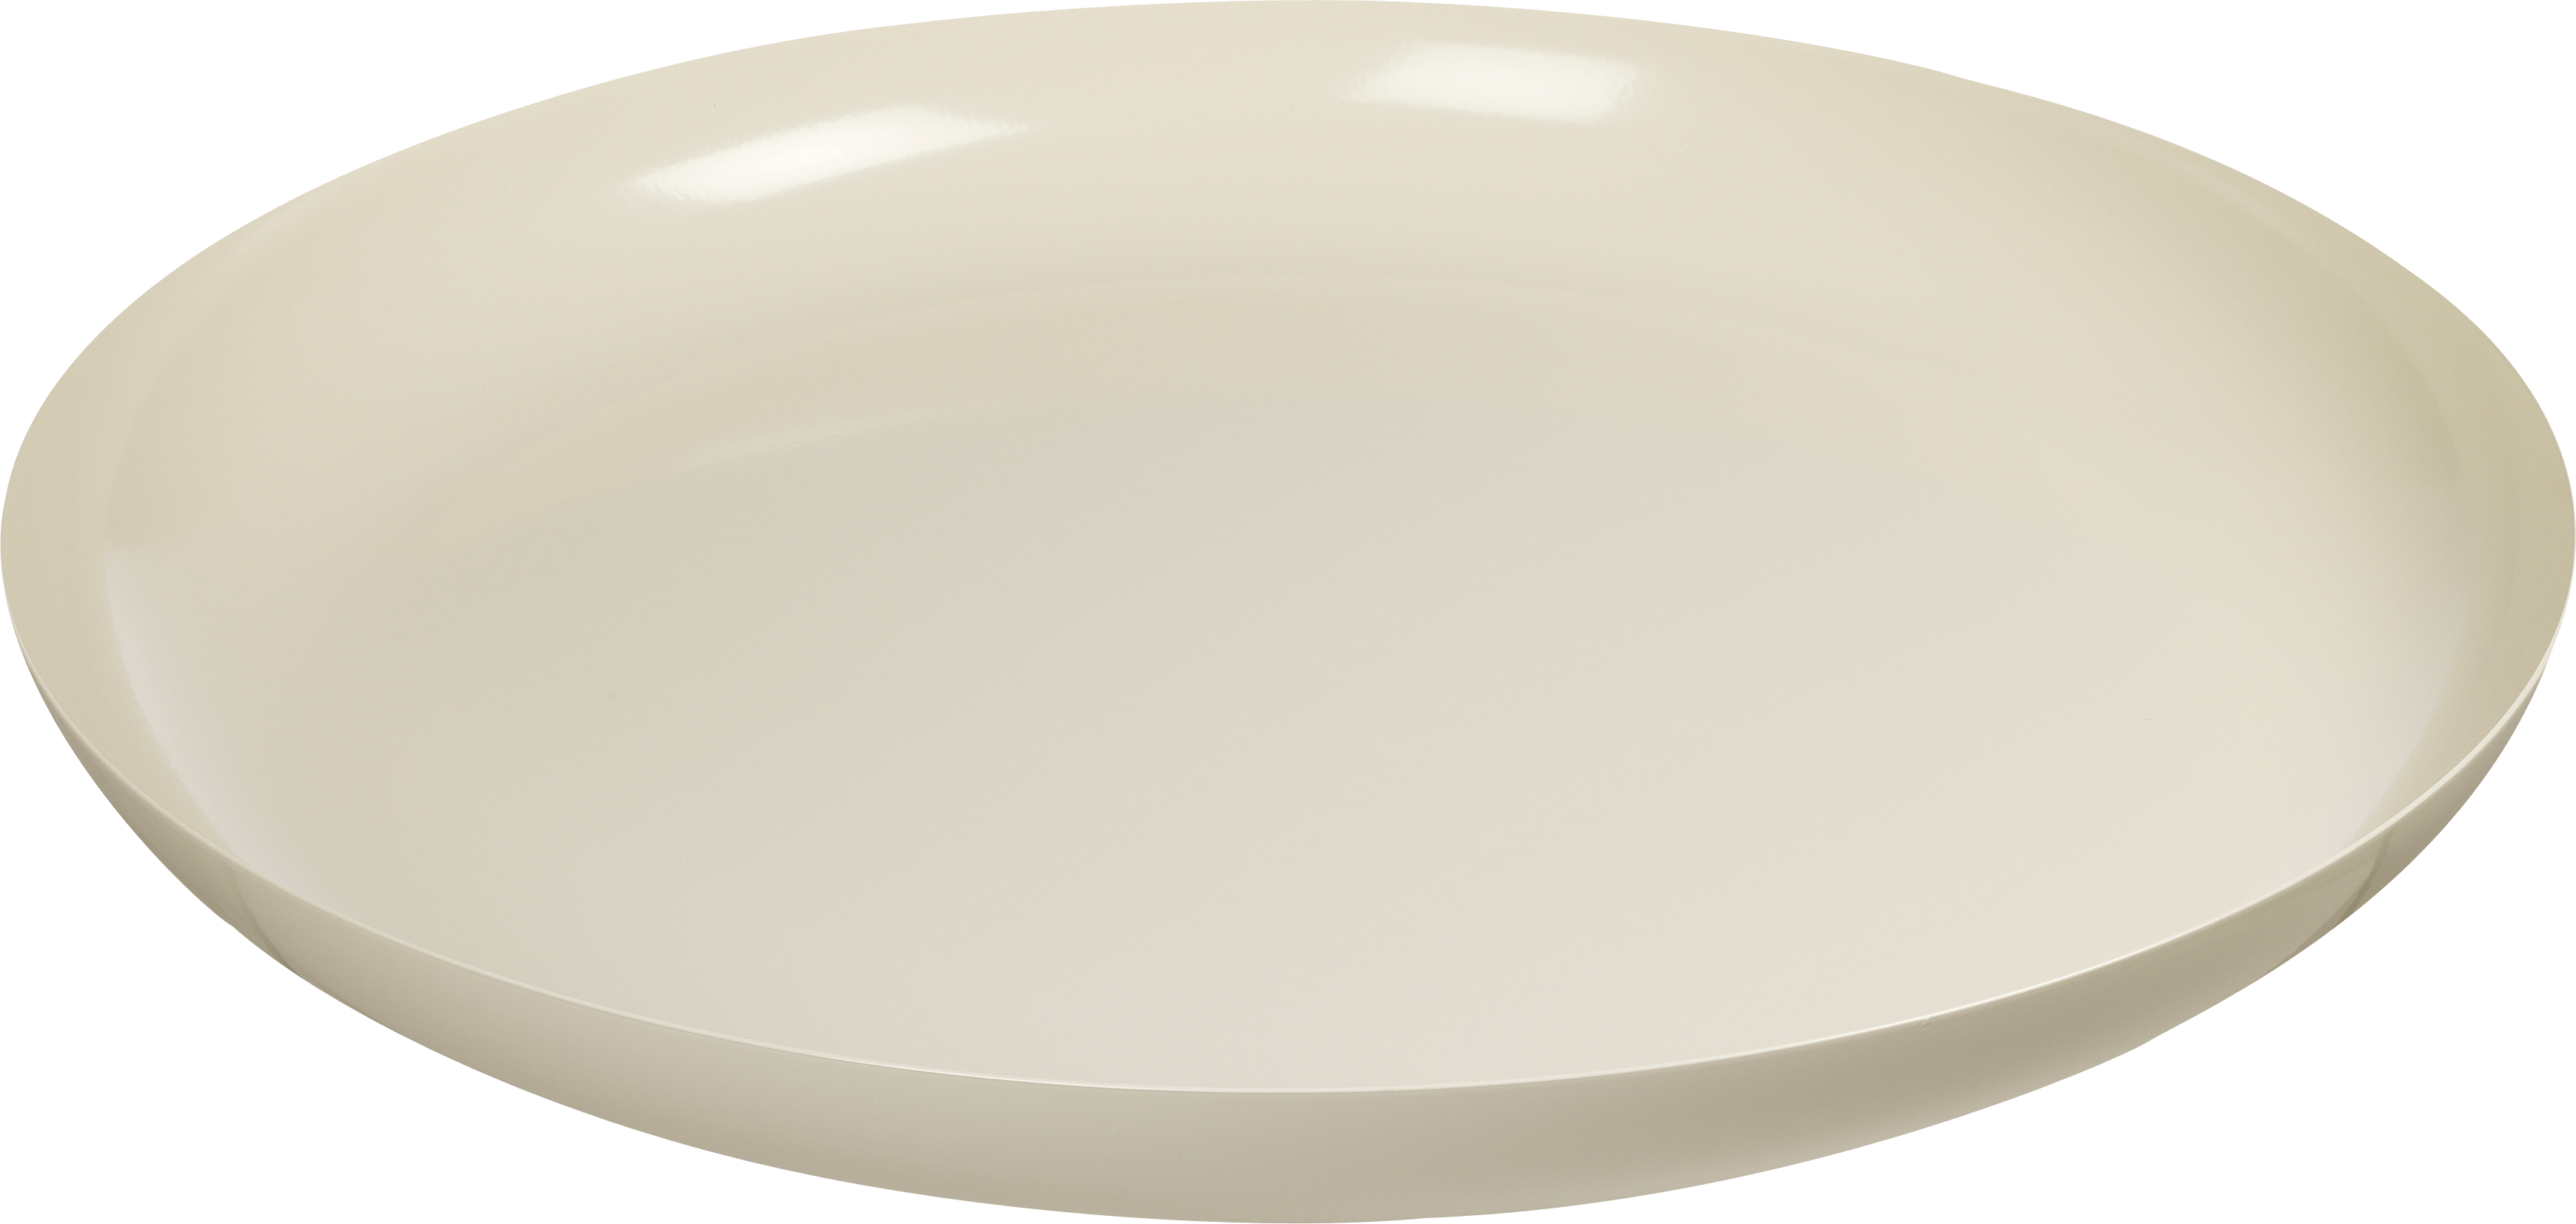 White Plate Png Image Plates Plate Png White Plates